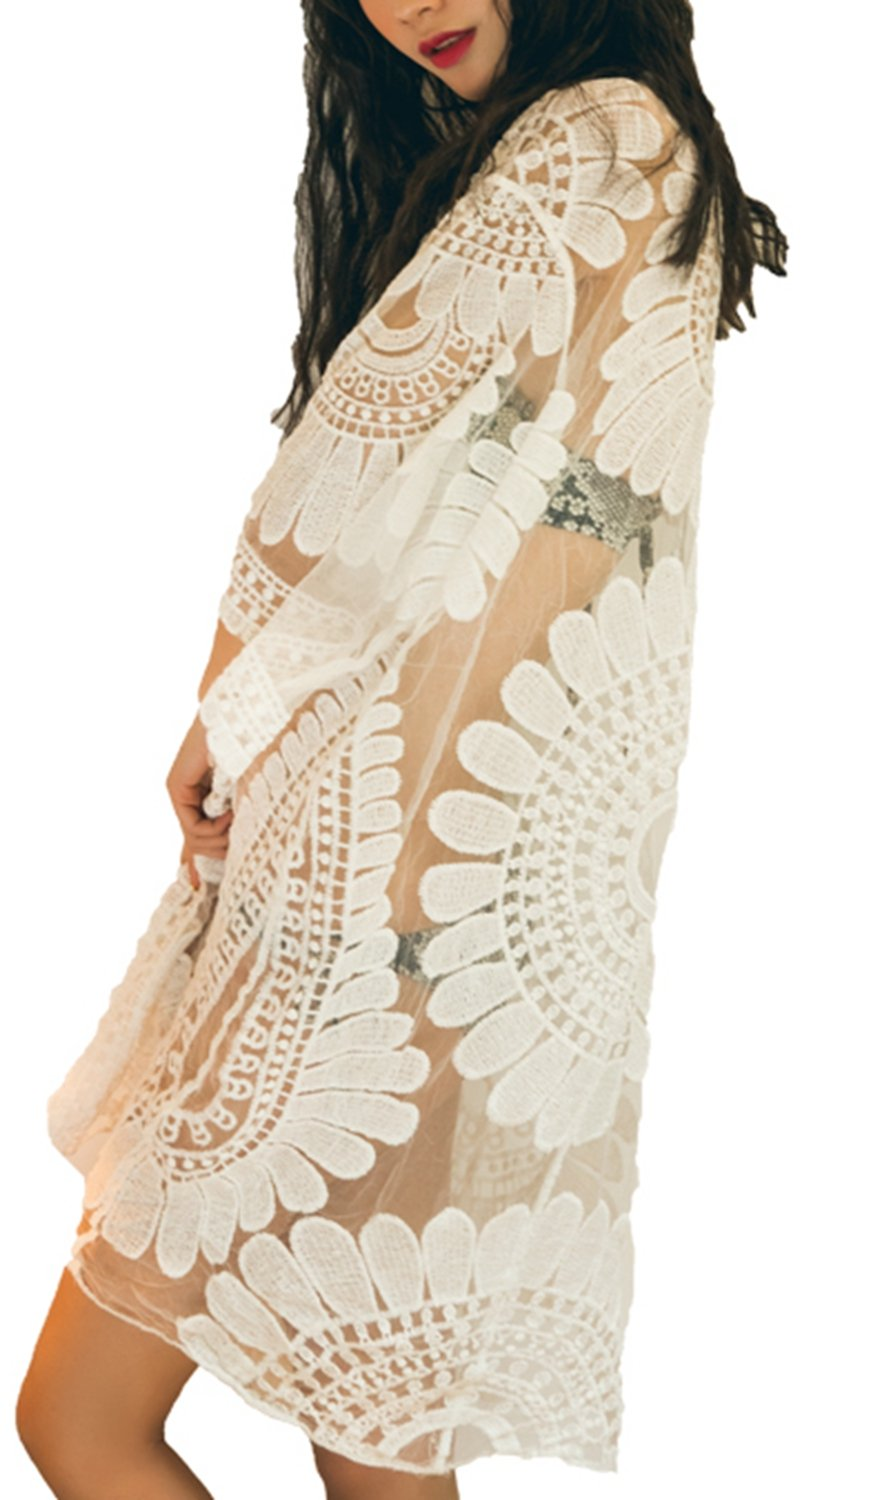 VenuStar Women's Floral Crochet Lace Beach Swimsuit Cover Ups Long Vintage Kimono Cardigan Lace Cover up Jacket (One Size, Y-Beige)